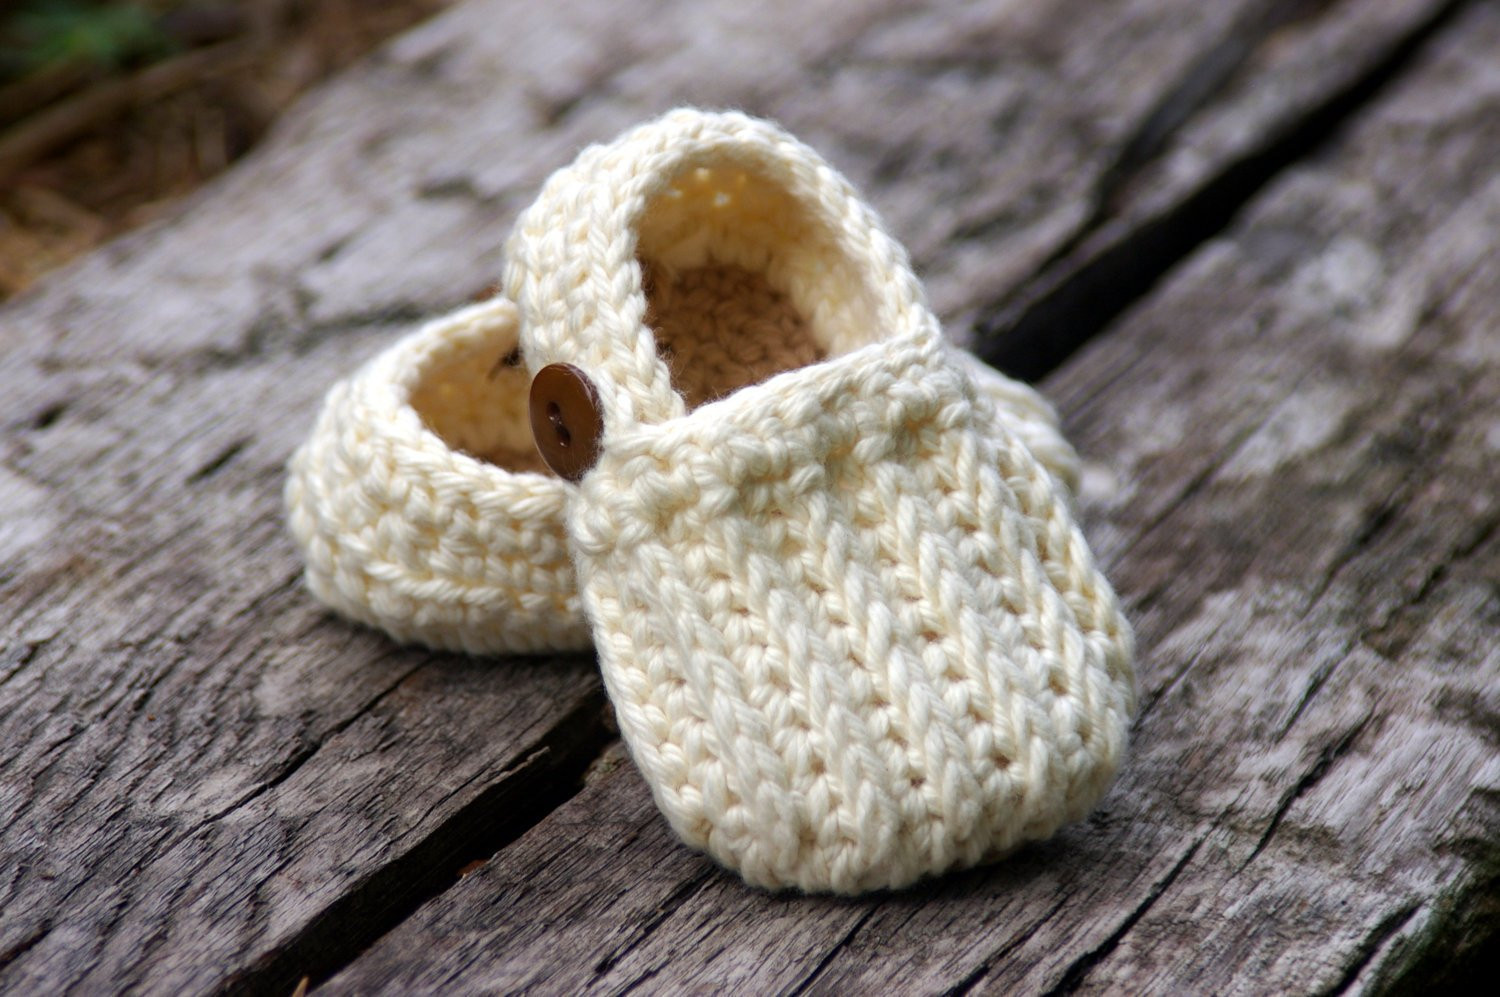 Easy Baby Booties Crochet Pattern Lovely Baby Booties Crochet Pattern Easy Loafers Knit Look Of Innovative 47 Ideas Easy Baby Booties Crochet Pattern